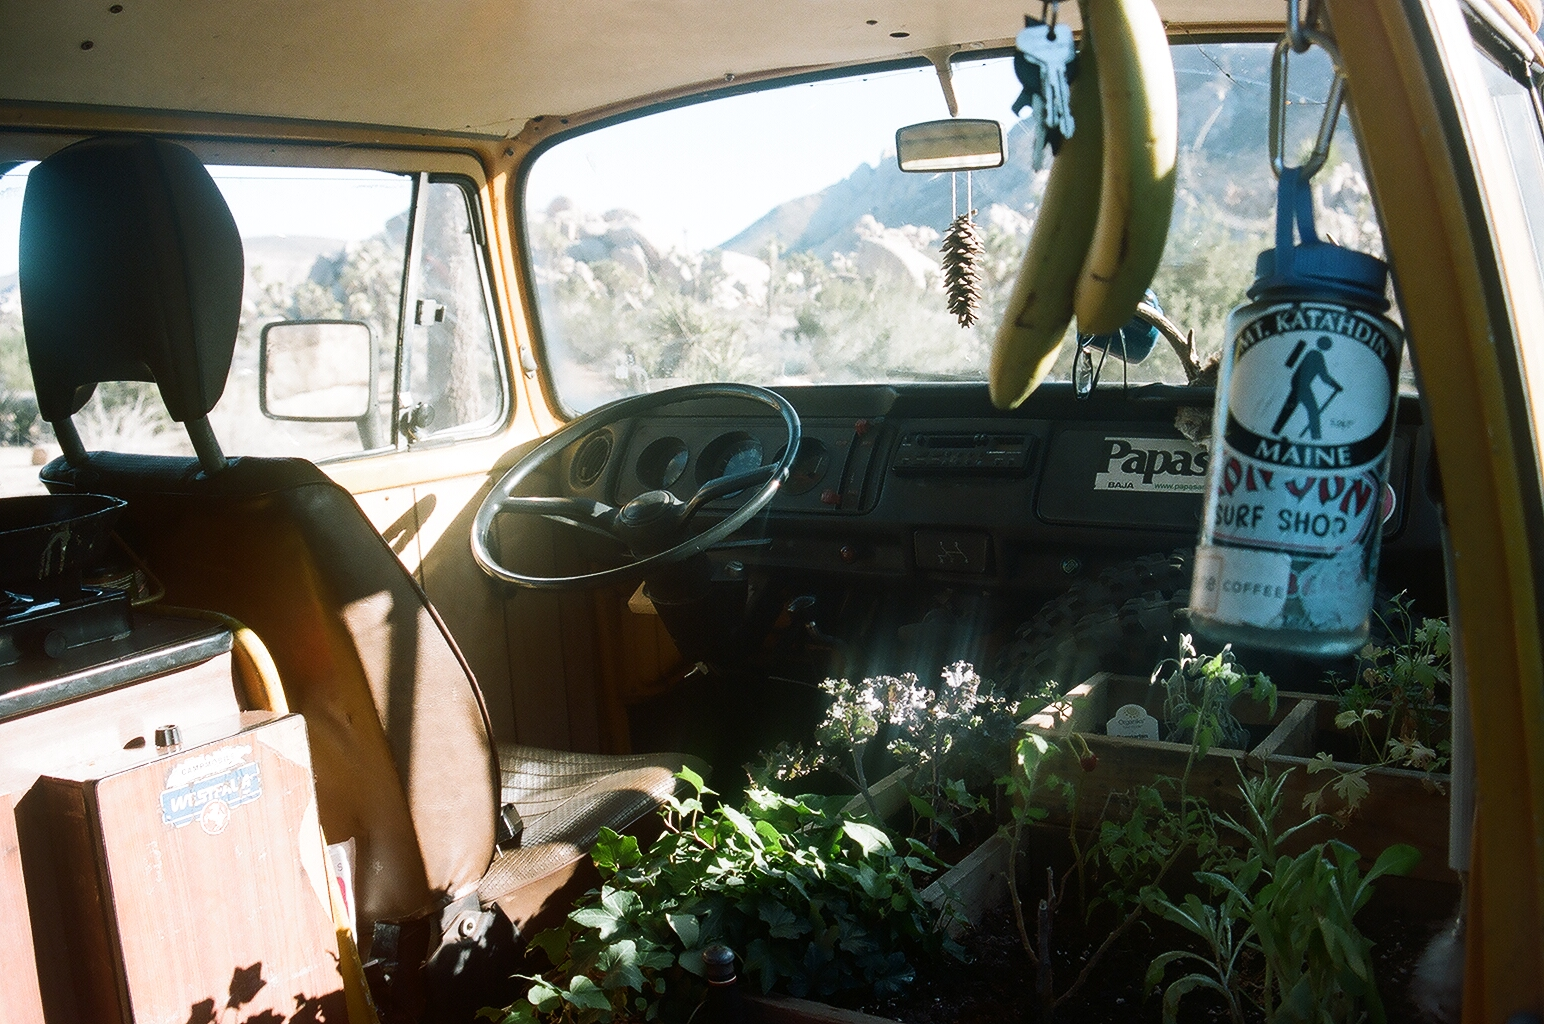 James' indoor garden. Not only does it provide food, but an organic smell for the whole van.